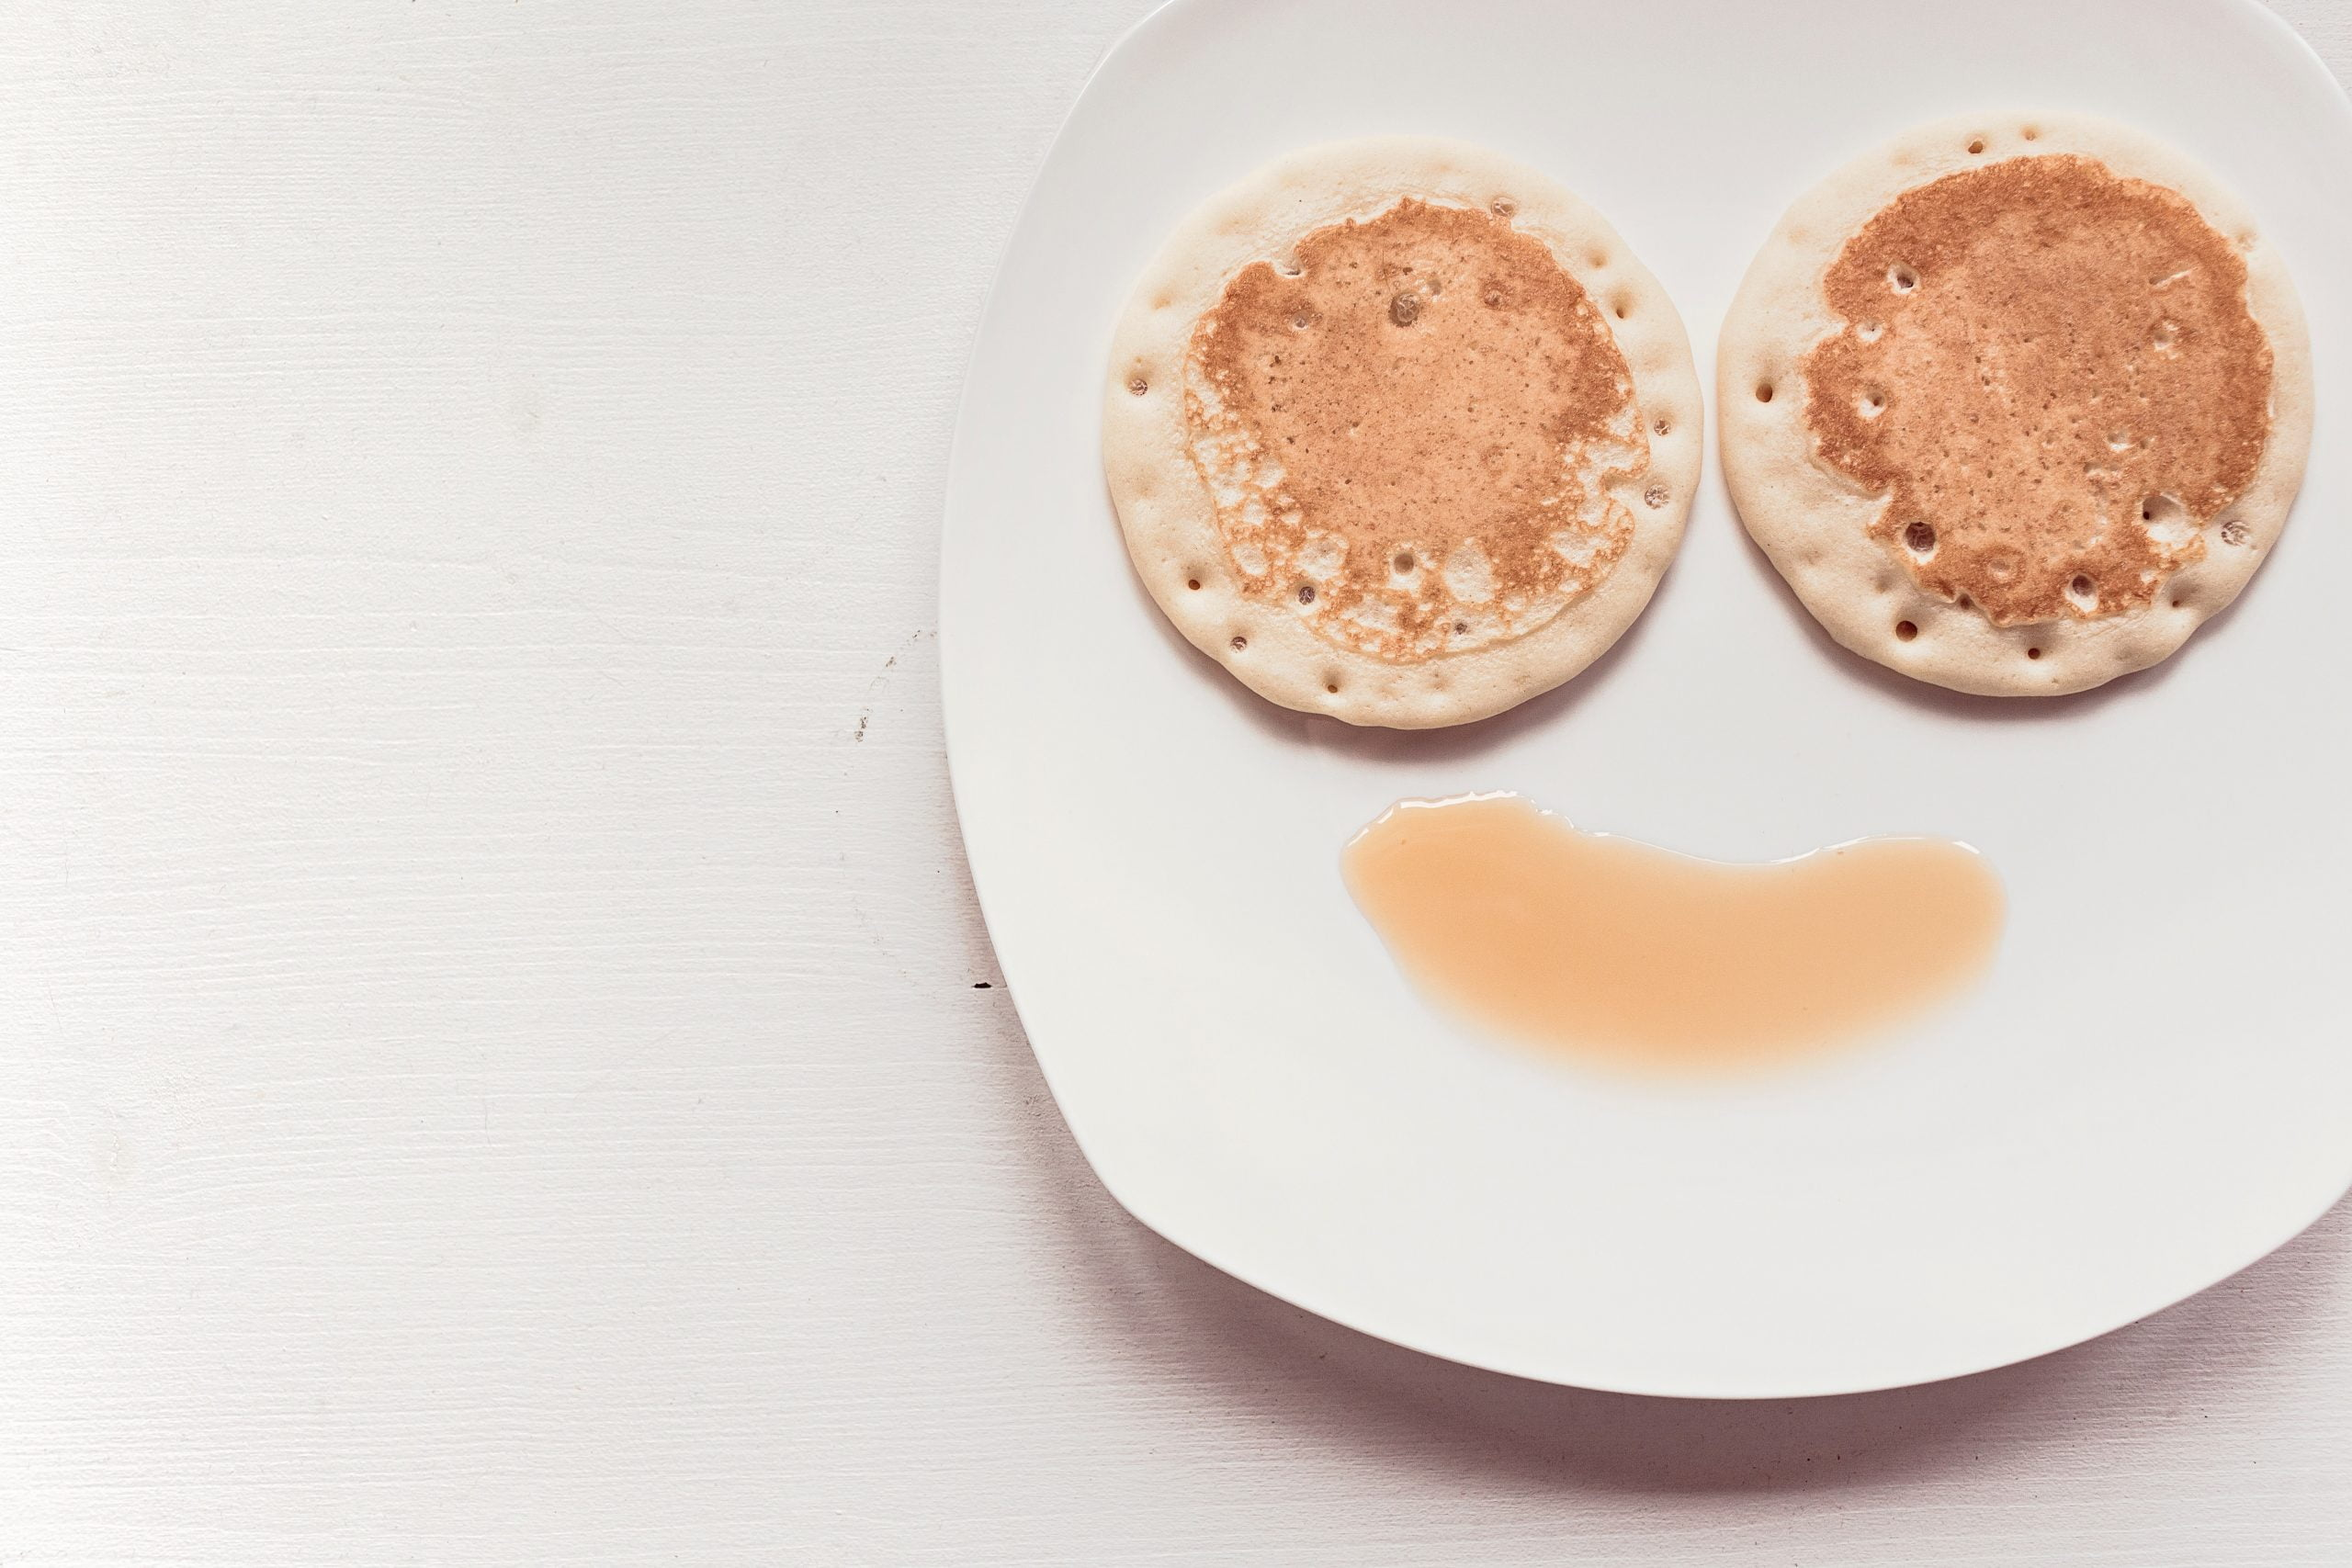 Pancake and syrup showing a smiley face representing unique promotional event